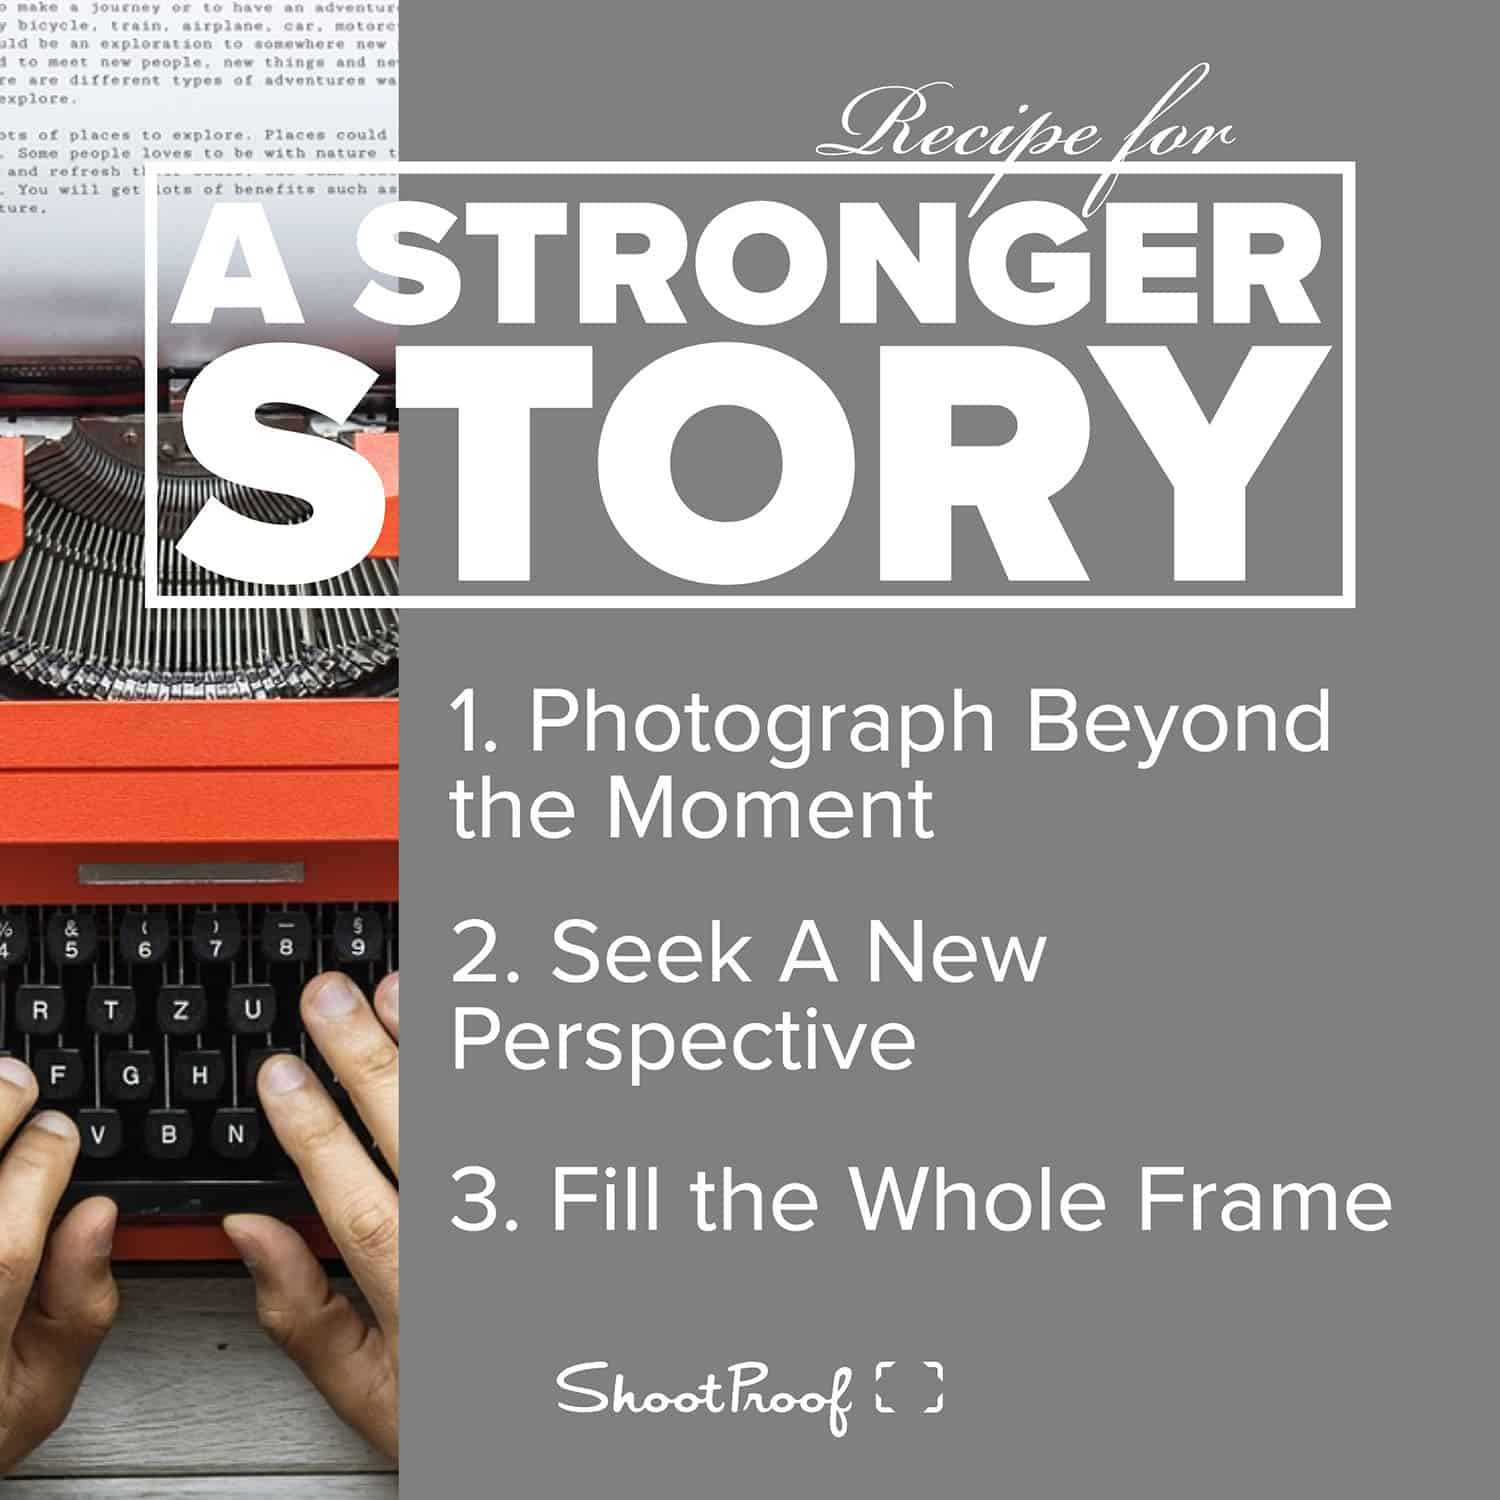 Learn Photography: Recipe for A Stronger Story